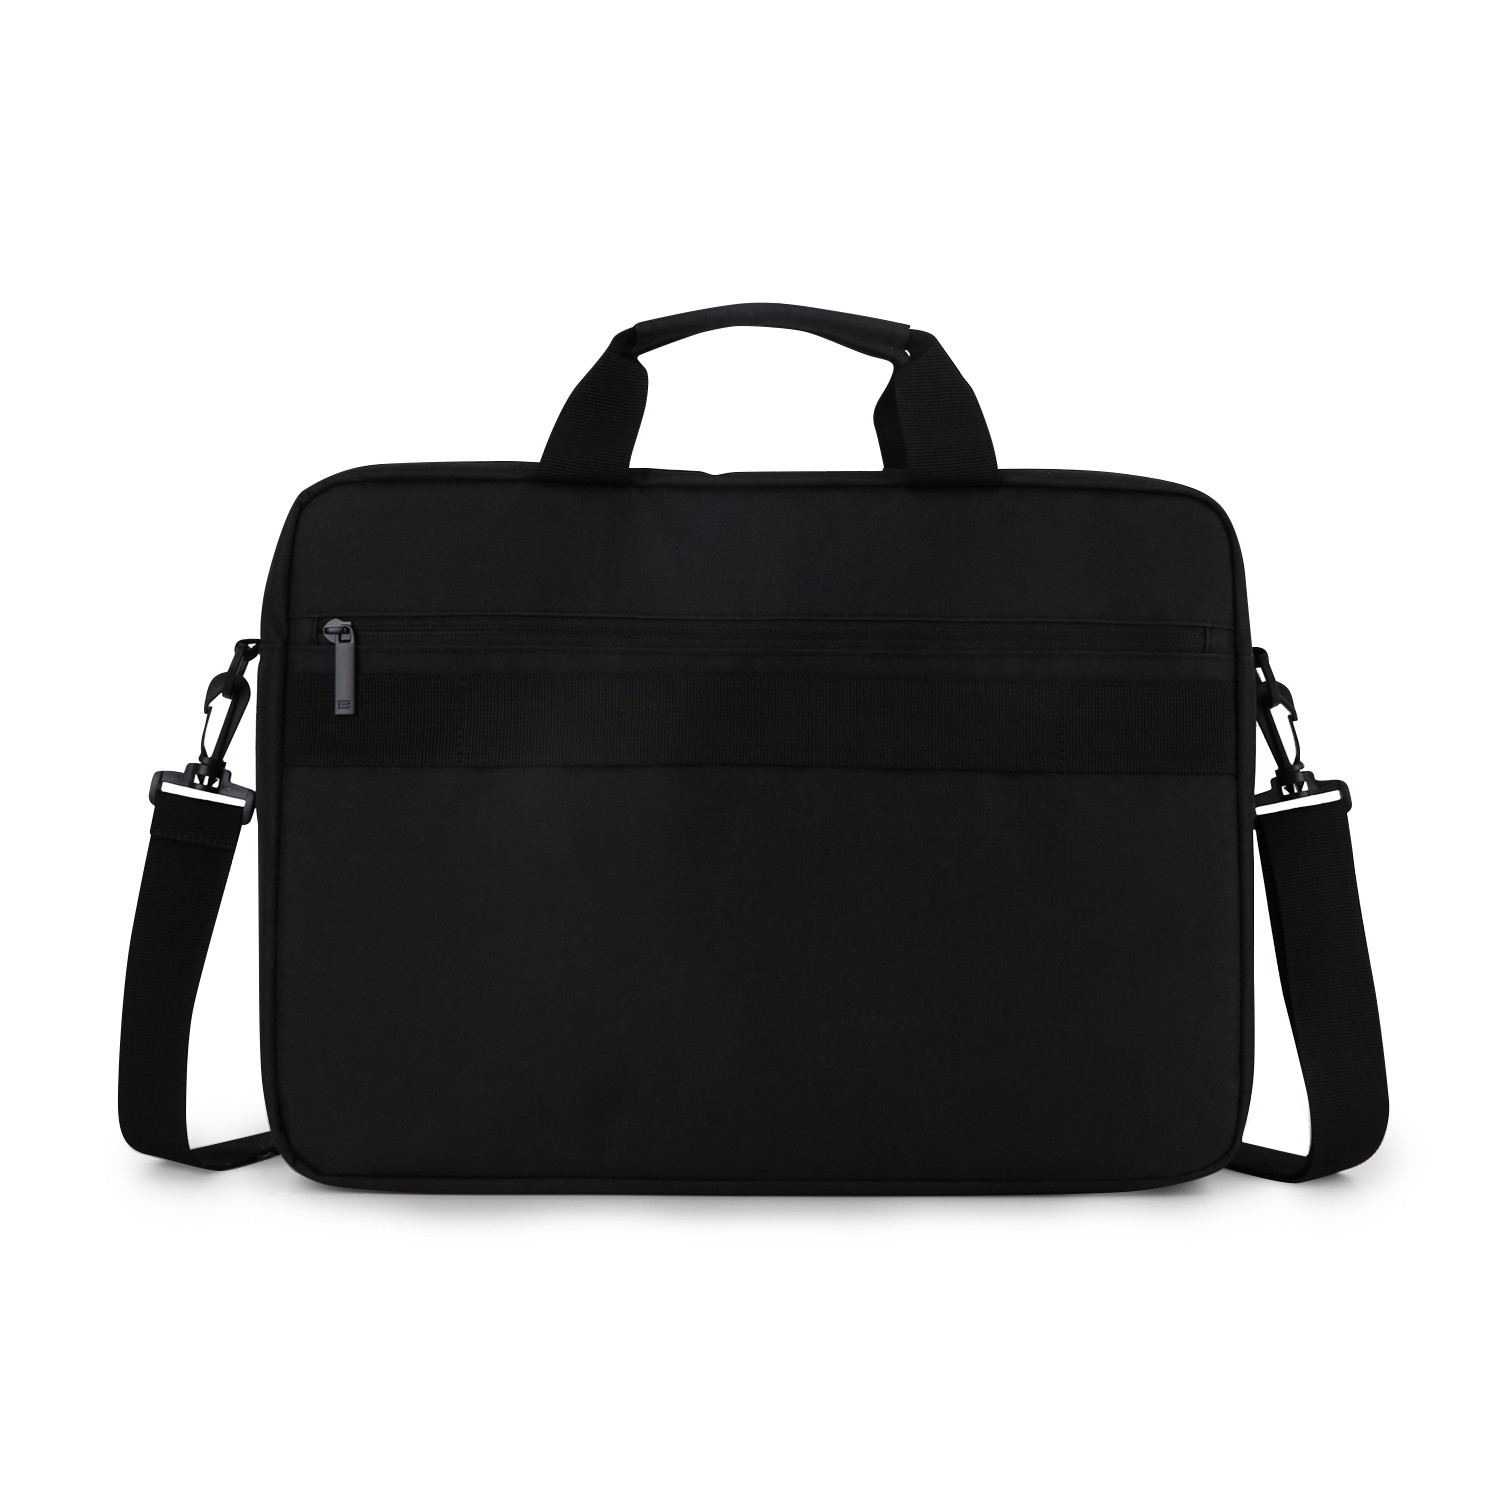 Laptop Briefcase Manufacturers, Laptop Briefcase Factory, Supply Laptop Briefcase